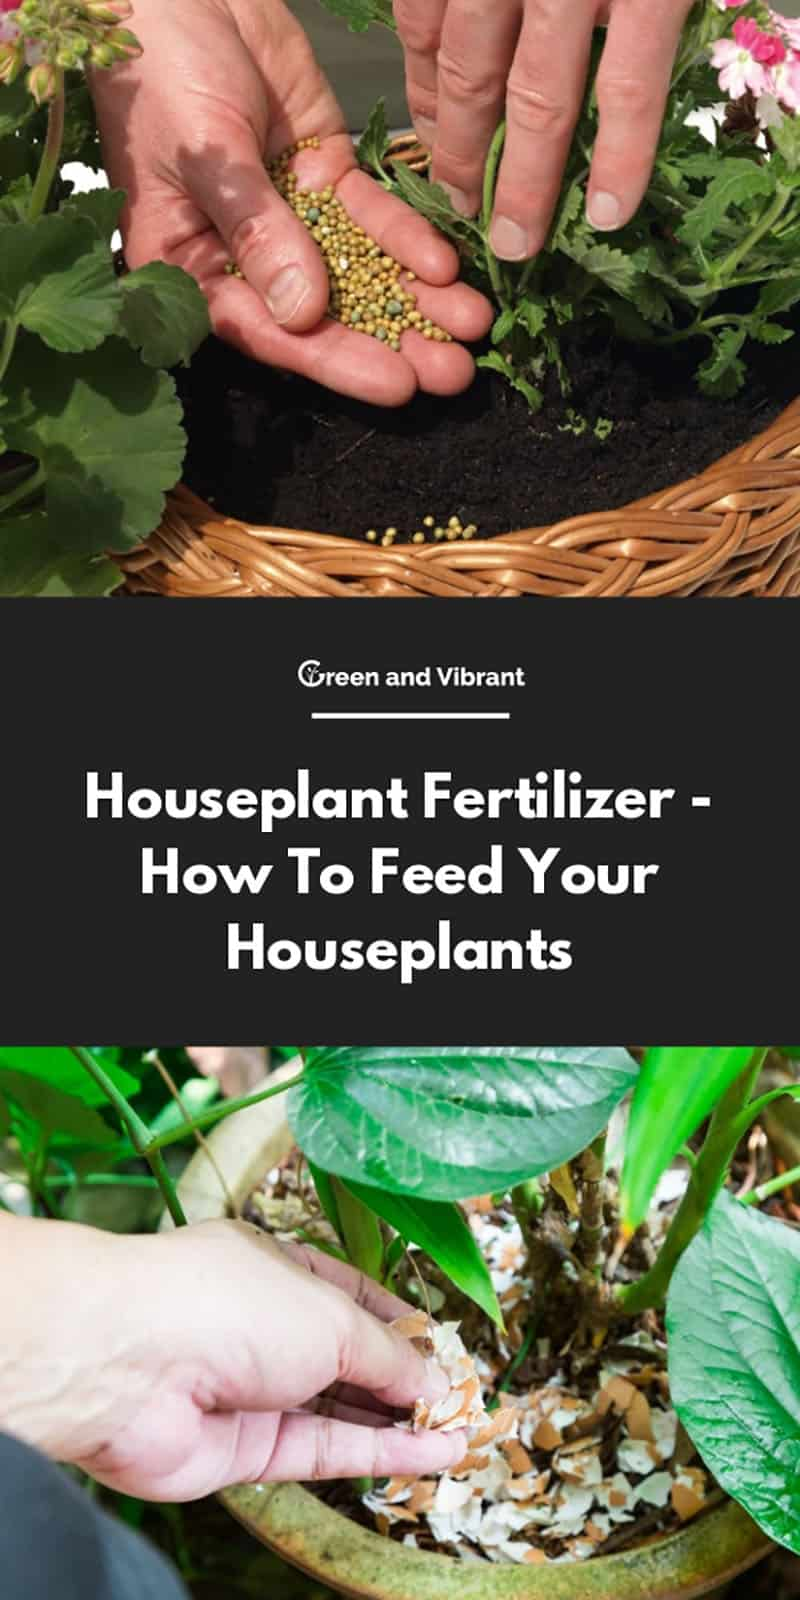 Houseplant Fertilizer - How To Feed Your Houseplants